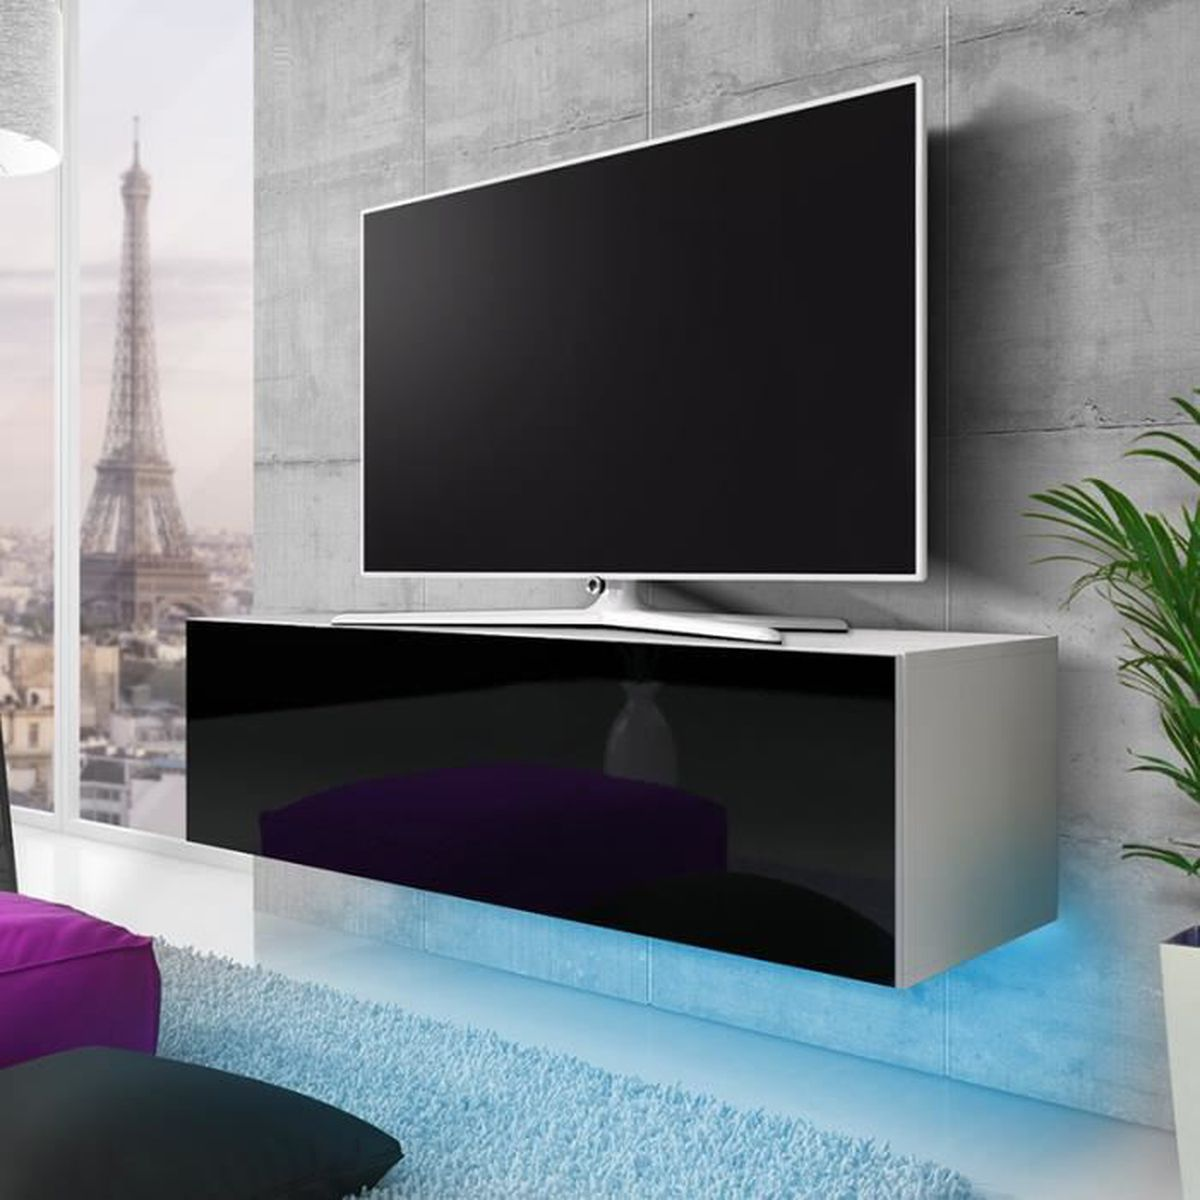 meuble tv lana avec led bleue blanc mat noir brillant 140cm achat vente meuble tv meuble. Black Bedroom Furniture Sets. Home Design Ideas